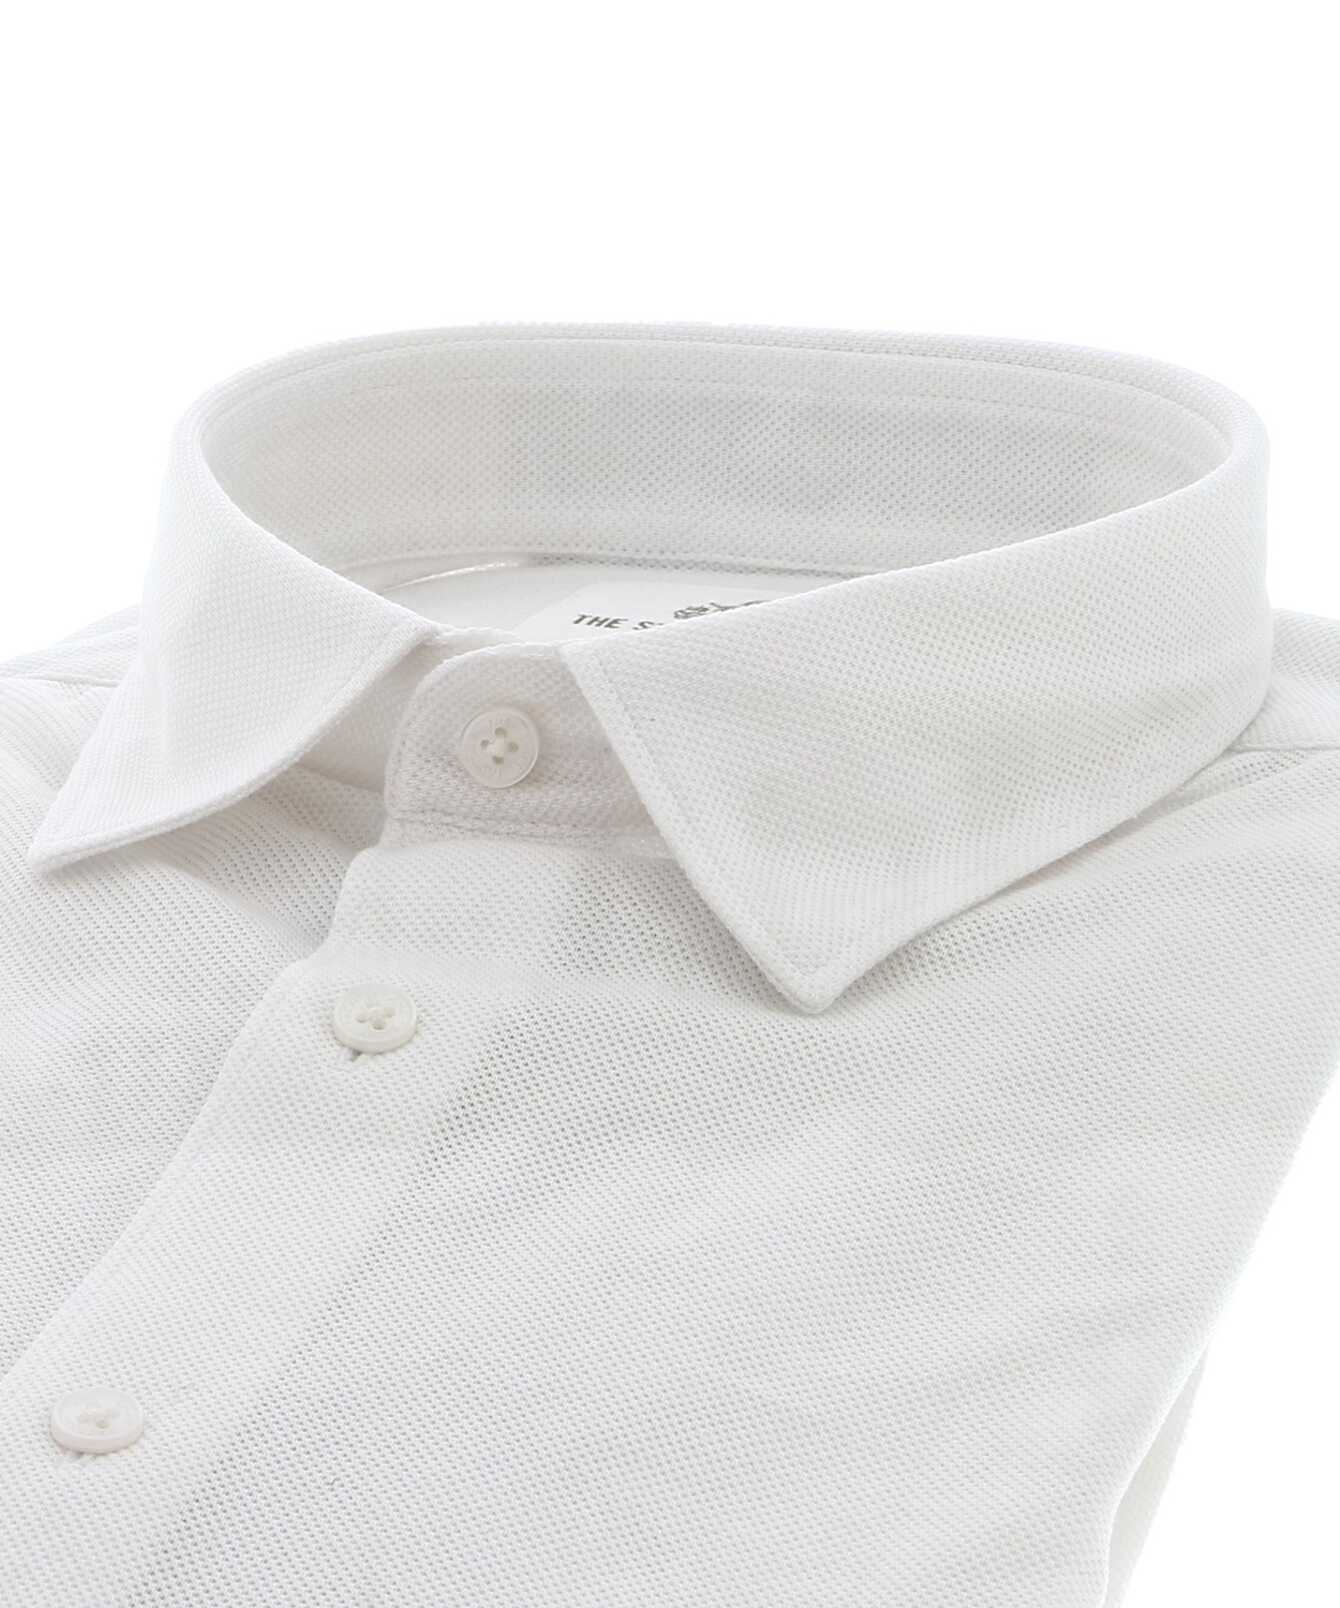 Shirt Royal Troon Pique White The Shirt Factory